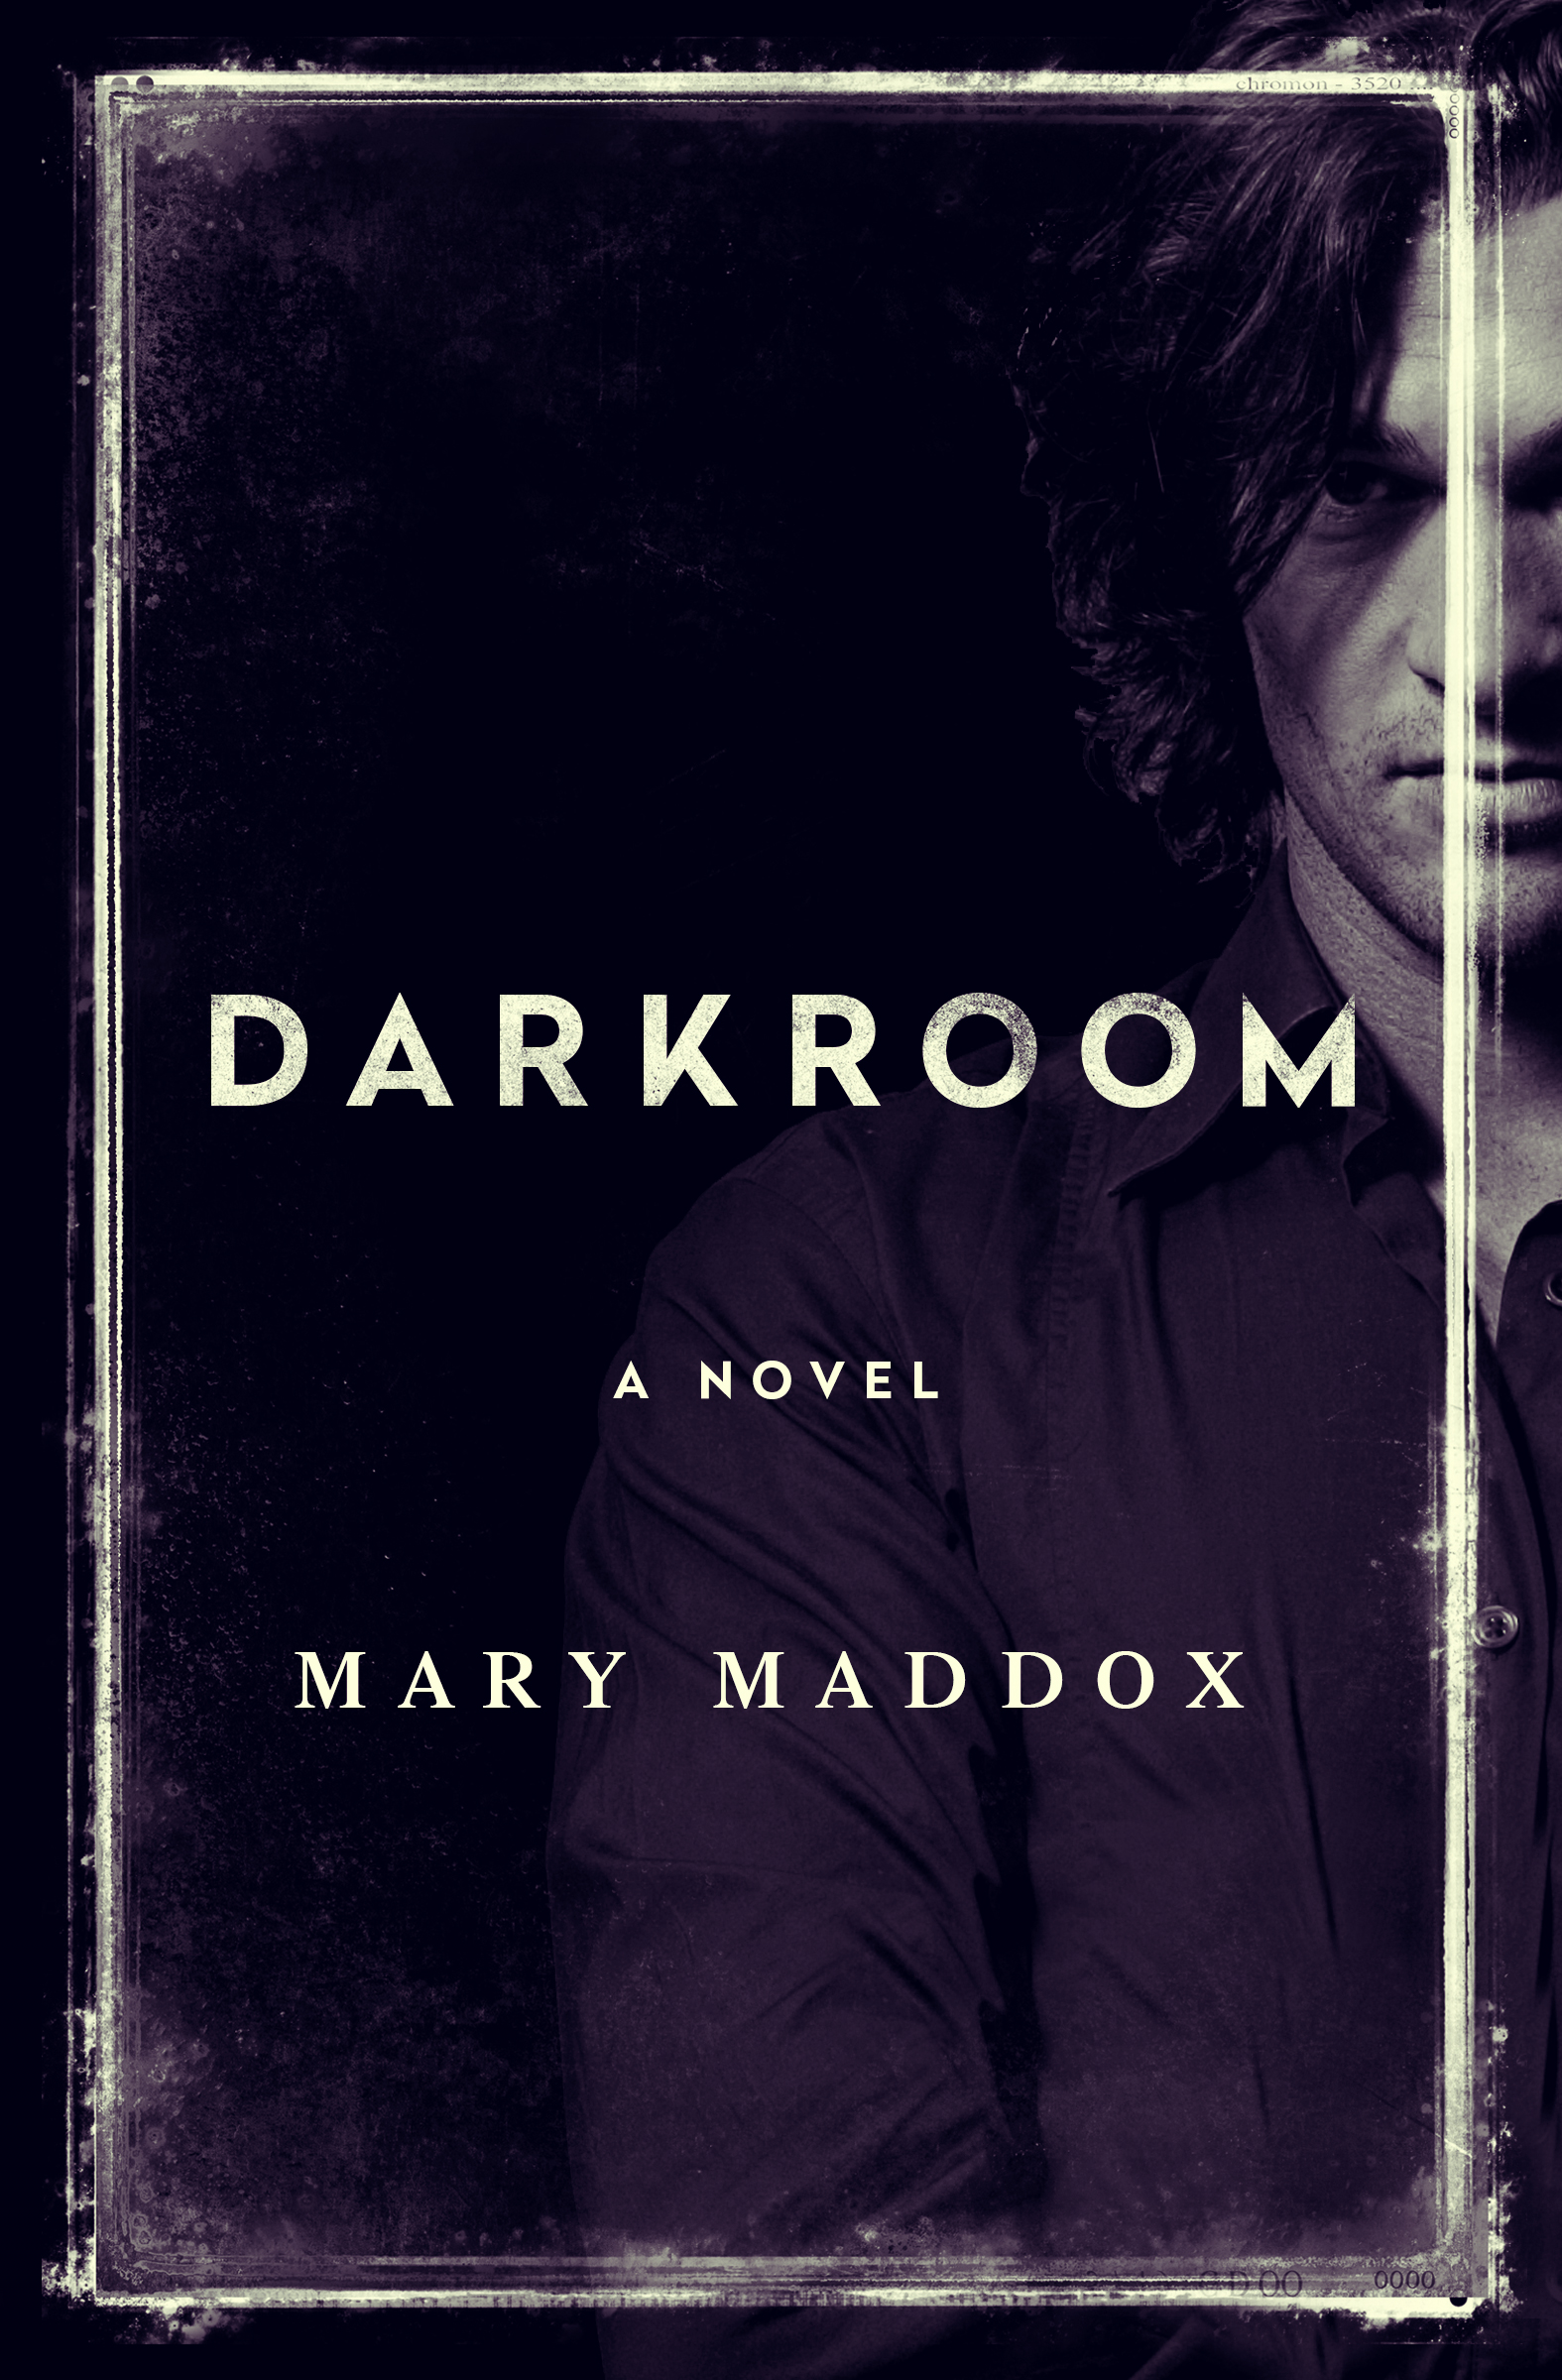 Darkroom by Mary Maddox